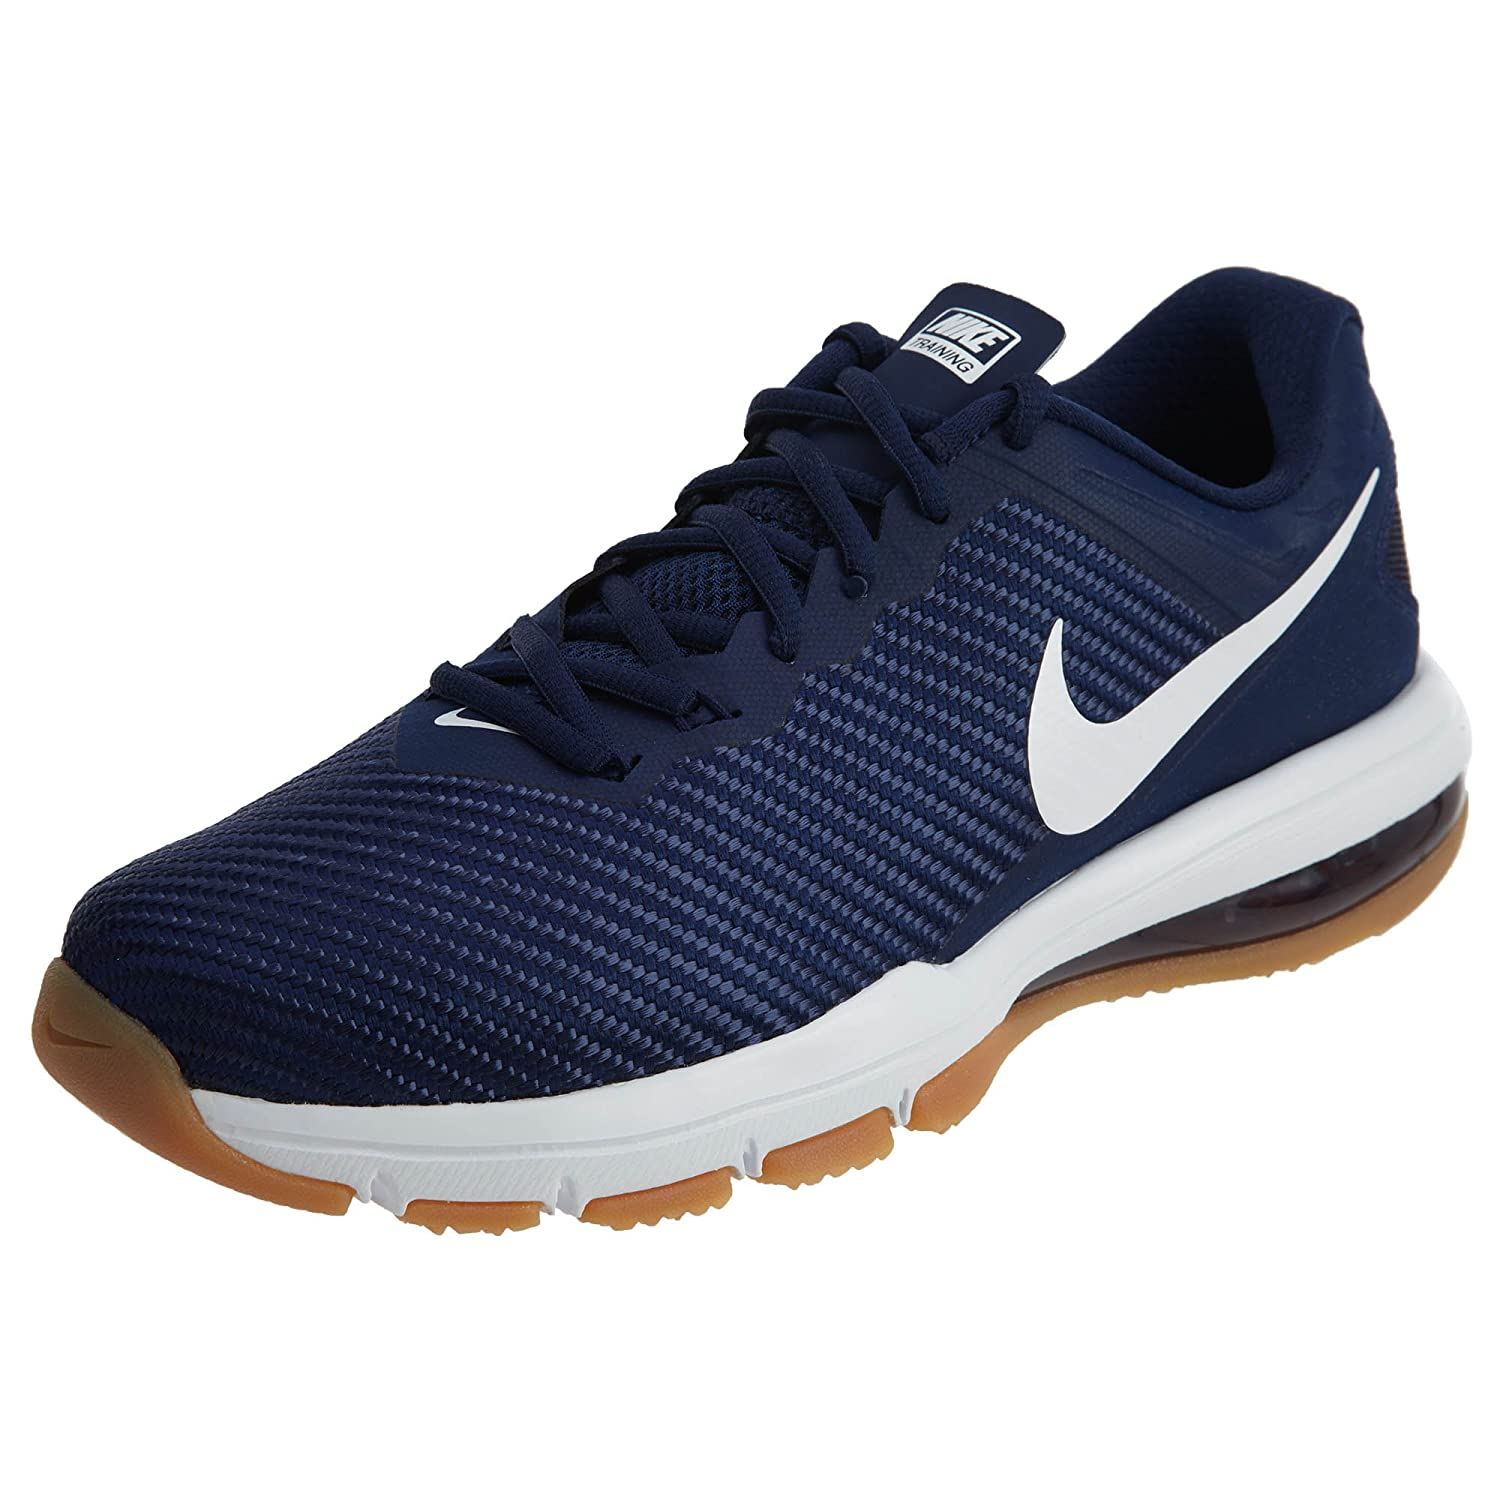 Nike Mens Air MAX Full Ride Training 1.5 Binary Blue White Mesh Trainers 46 EU 46 EU|Binary Blue White